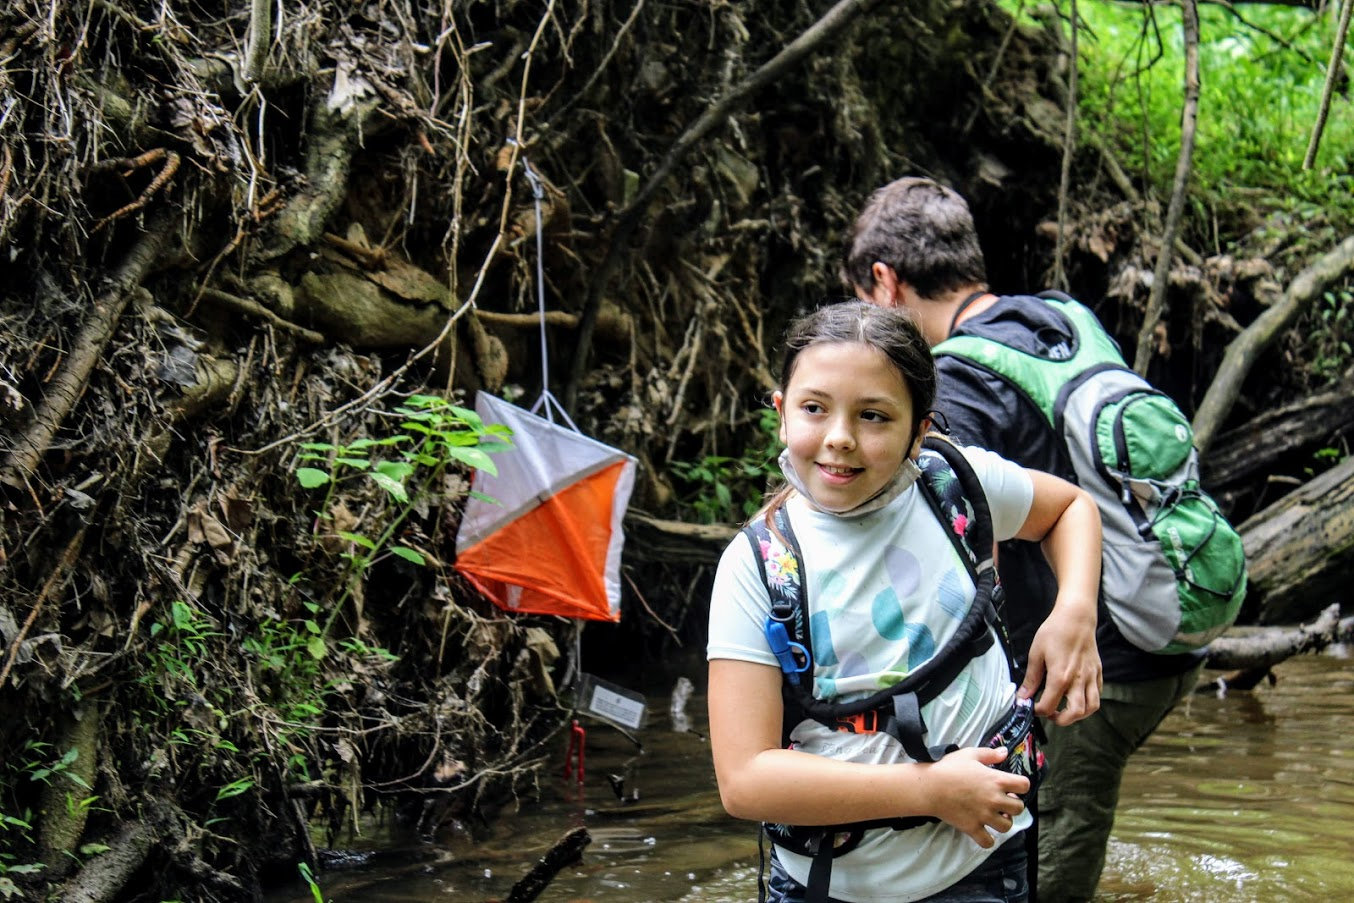 Adventure Racing program for ages 7-11